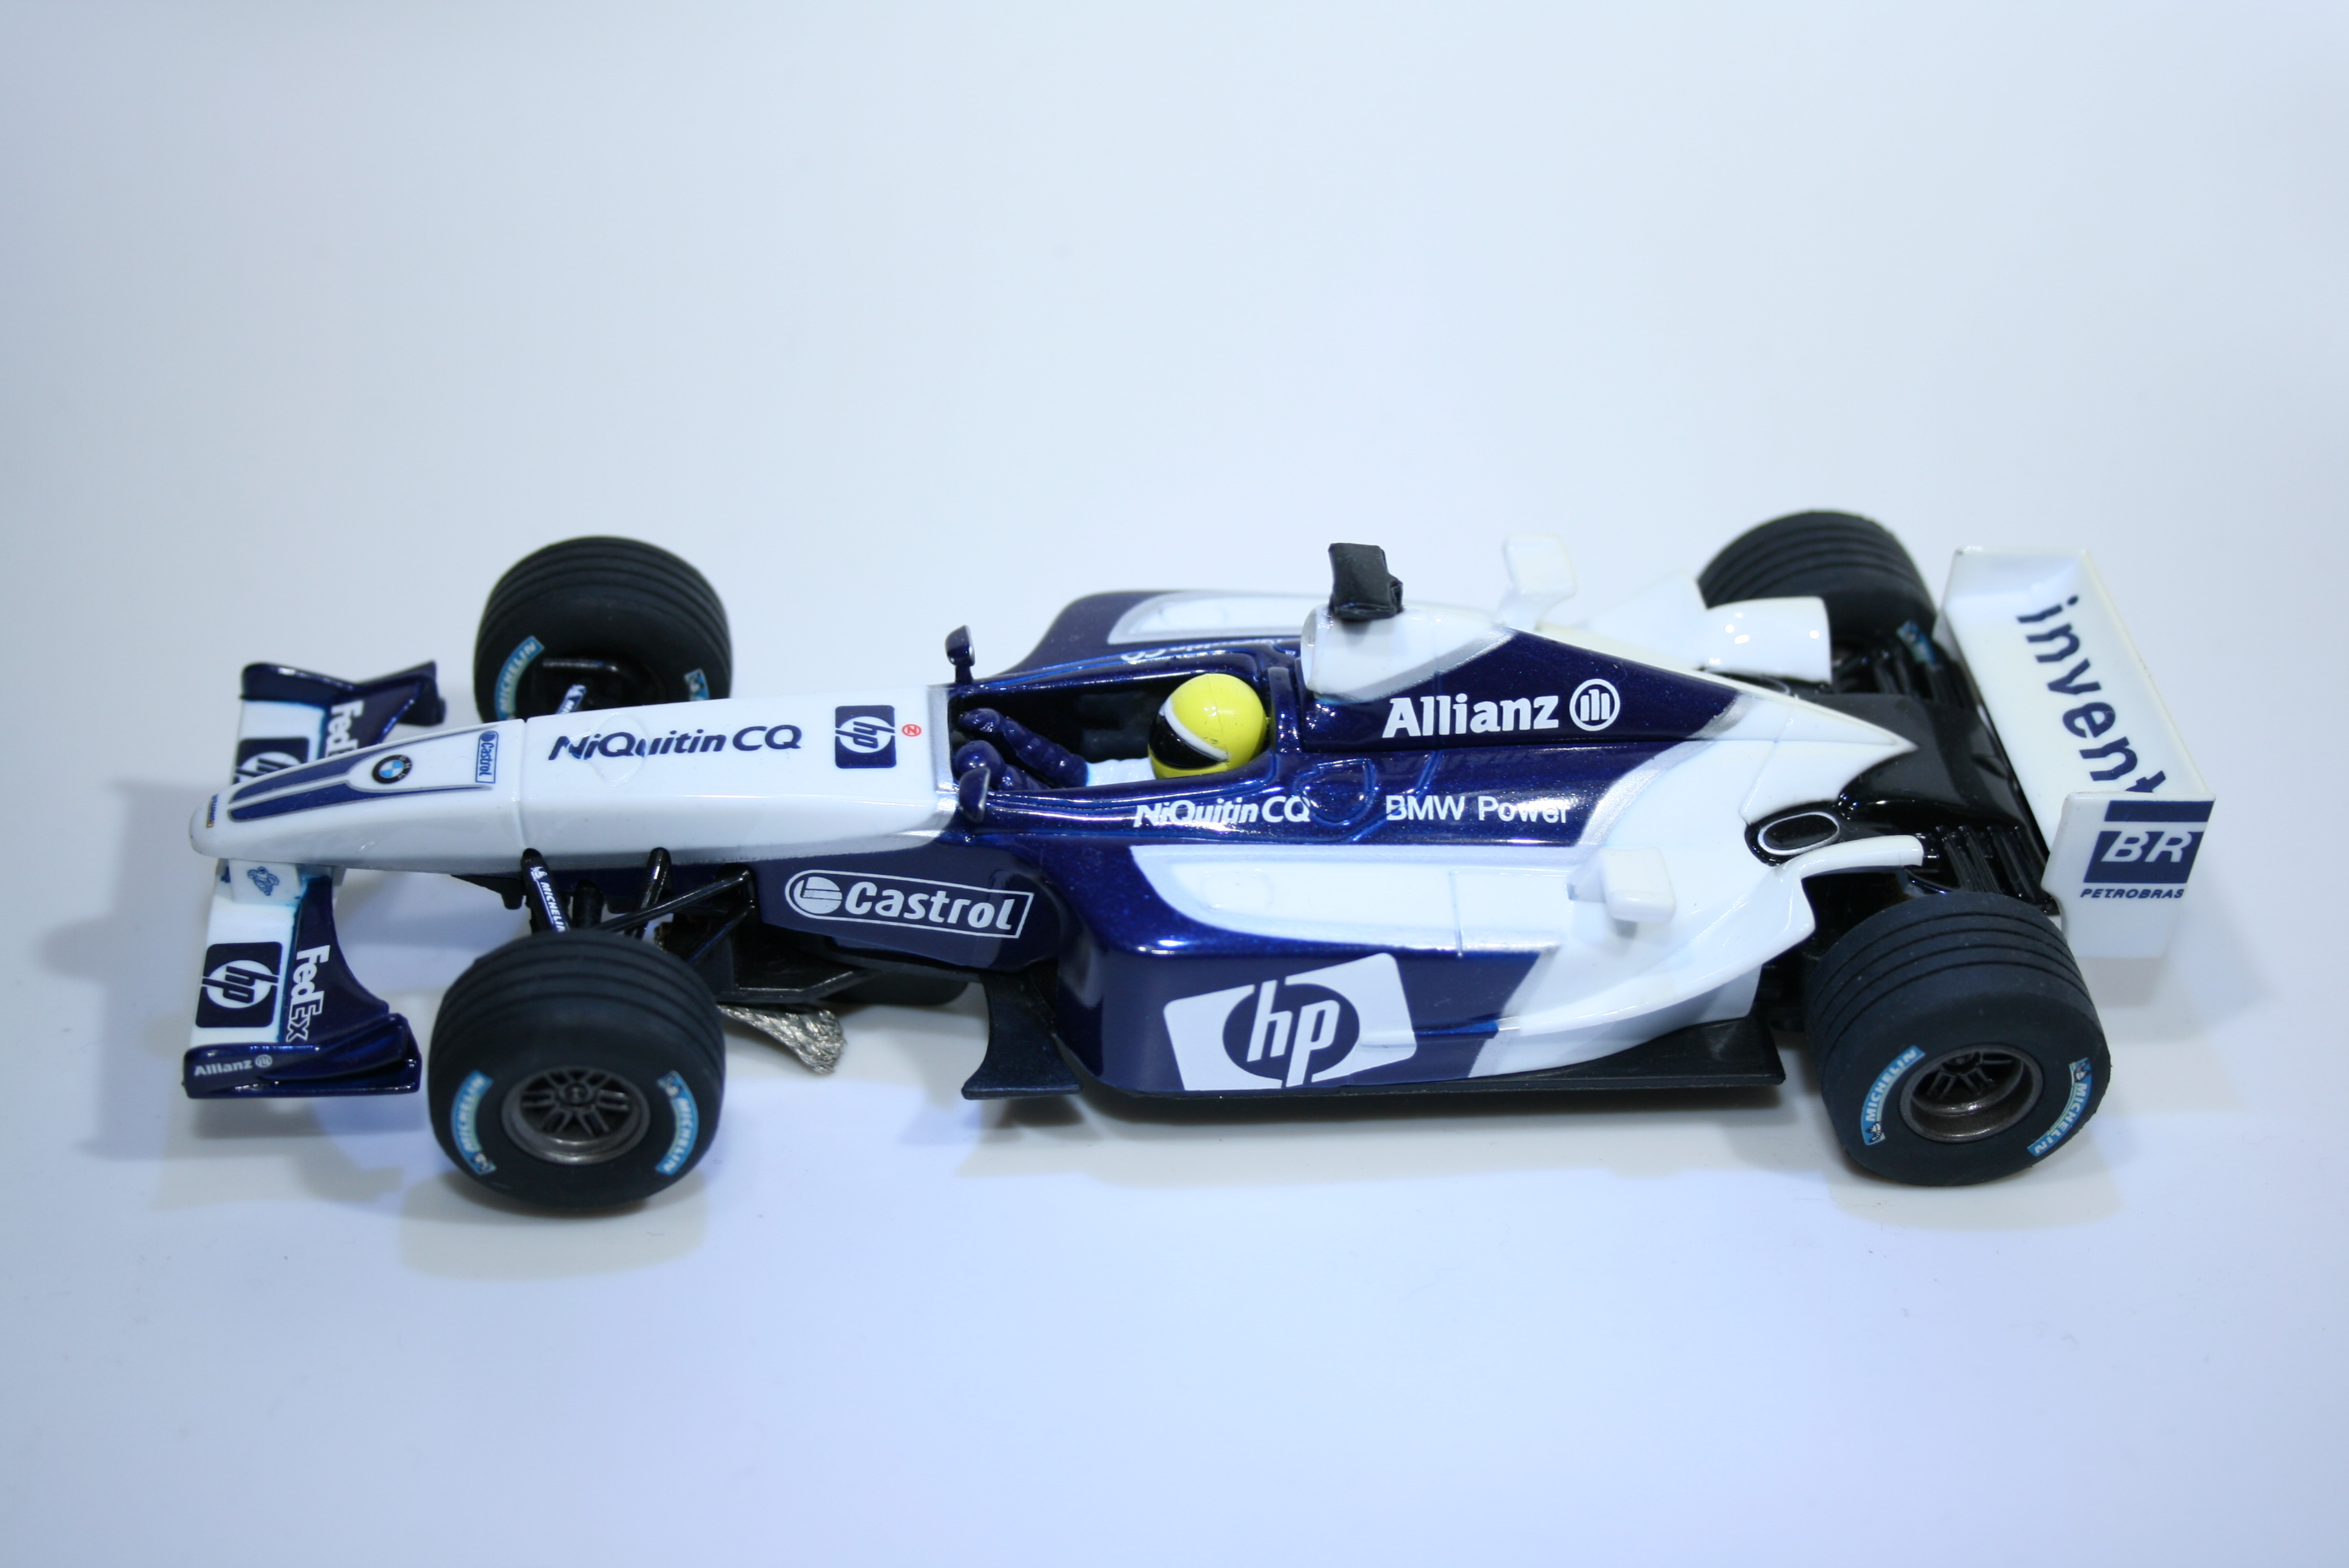 749 Williams FW24 2003 J P Montoya Carrera 25705 2003 Boxed